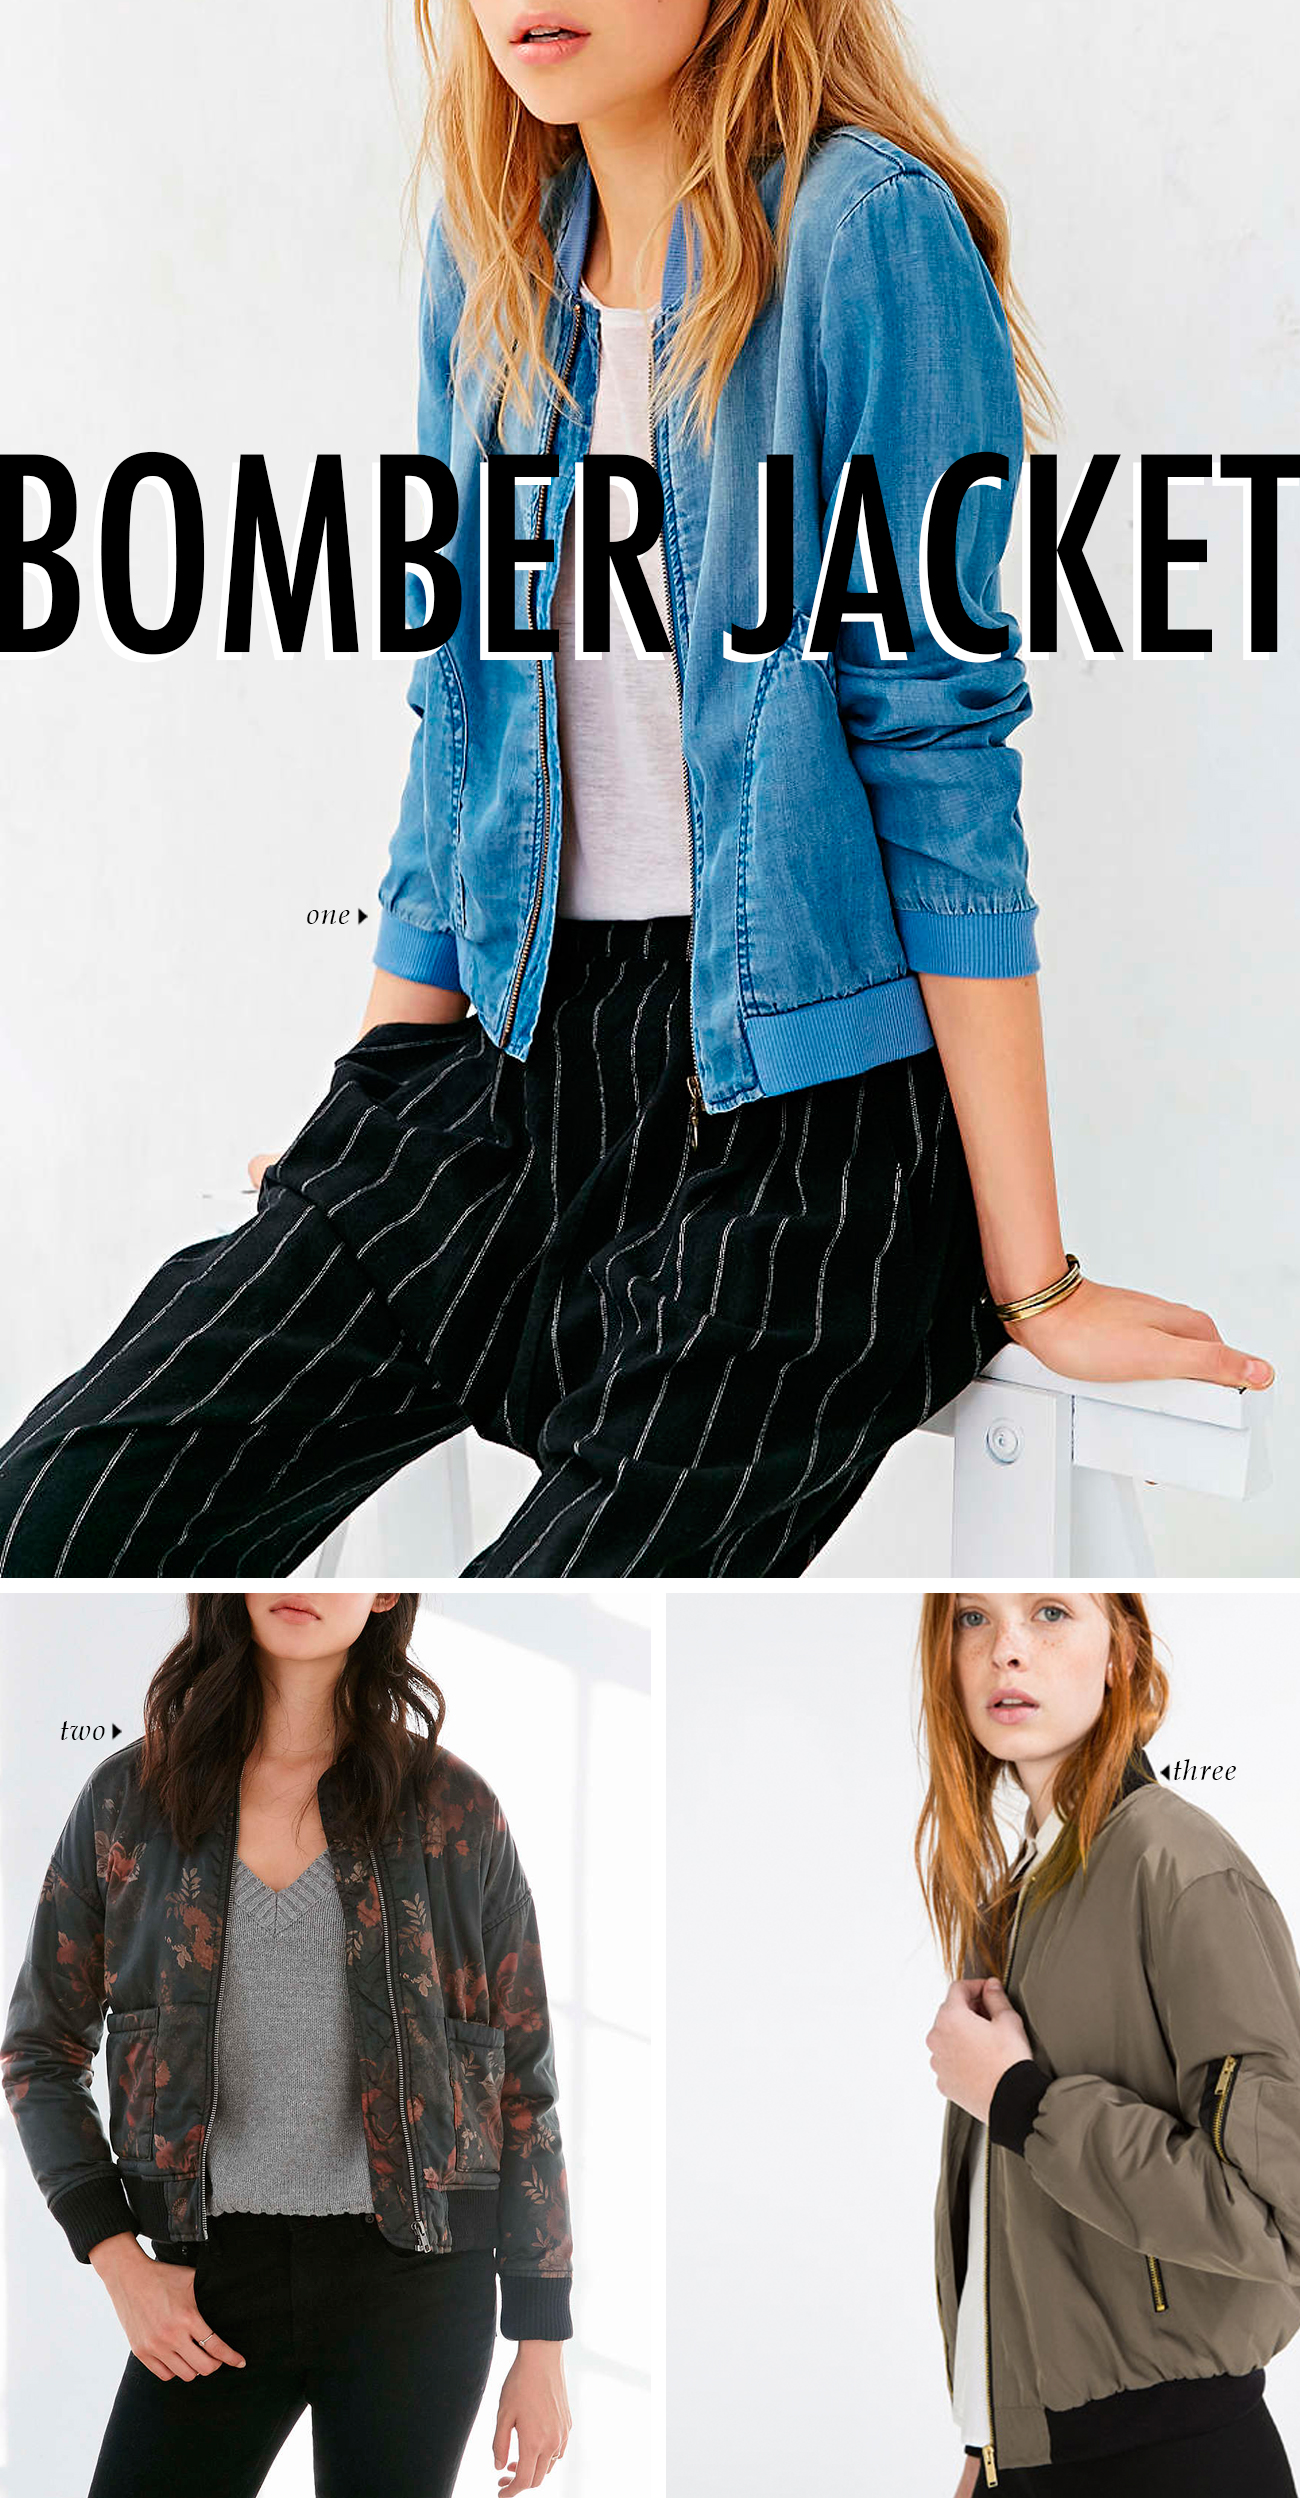 spring summer 2016 clothing trends - THE BOMBER JACKET #trends